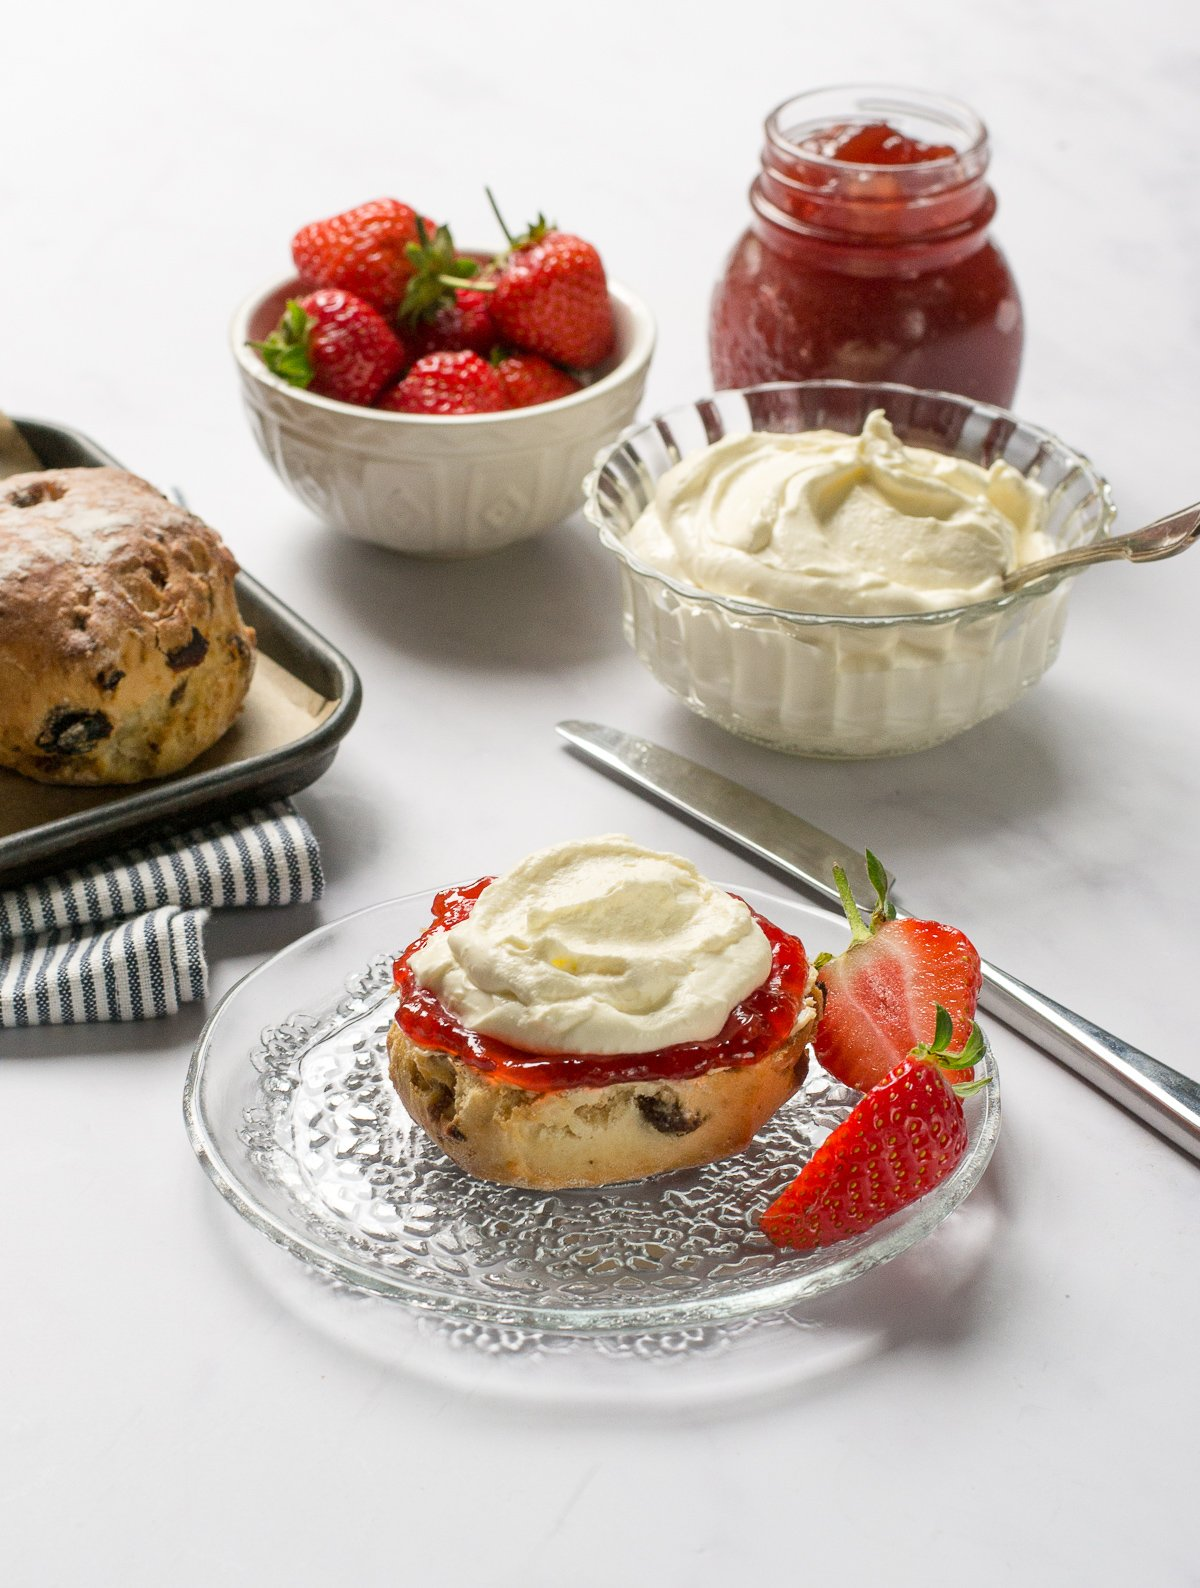 dairy-free clotted cream